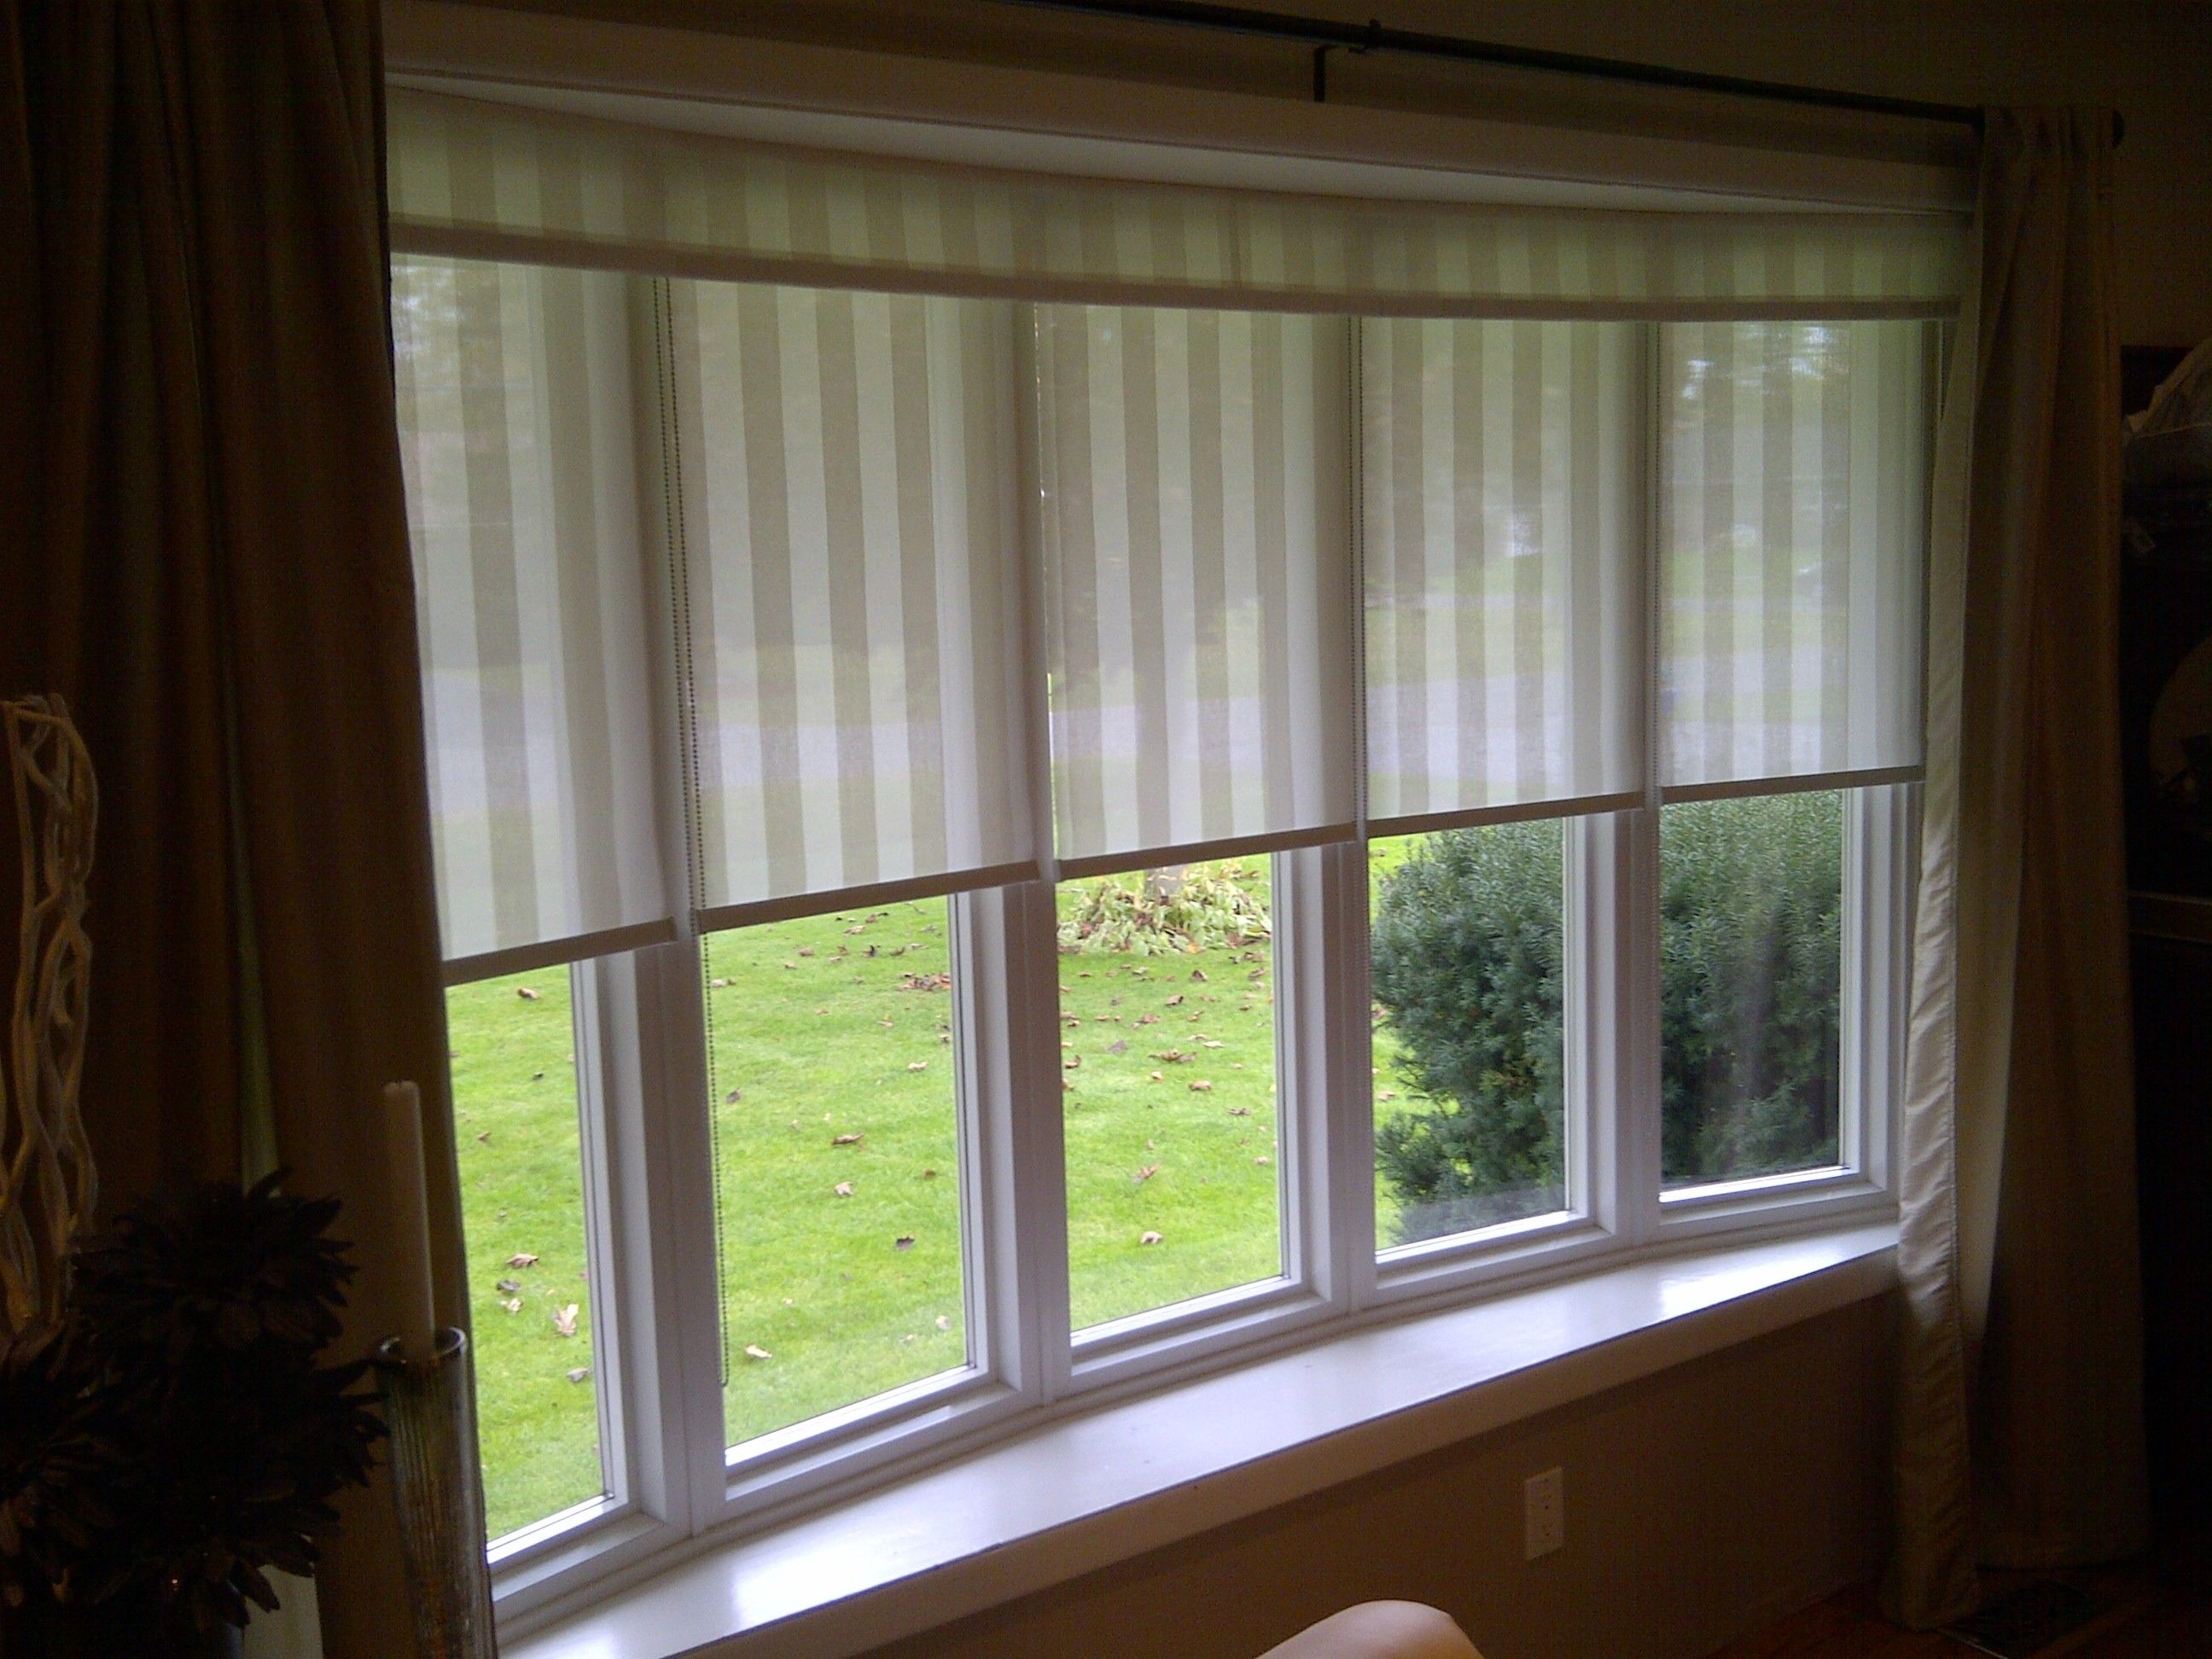 Sophisticated White Horizontal Mount Blinds For Windows Bay